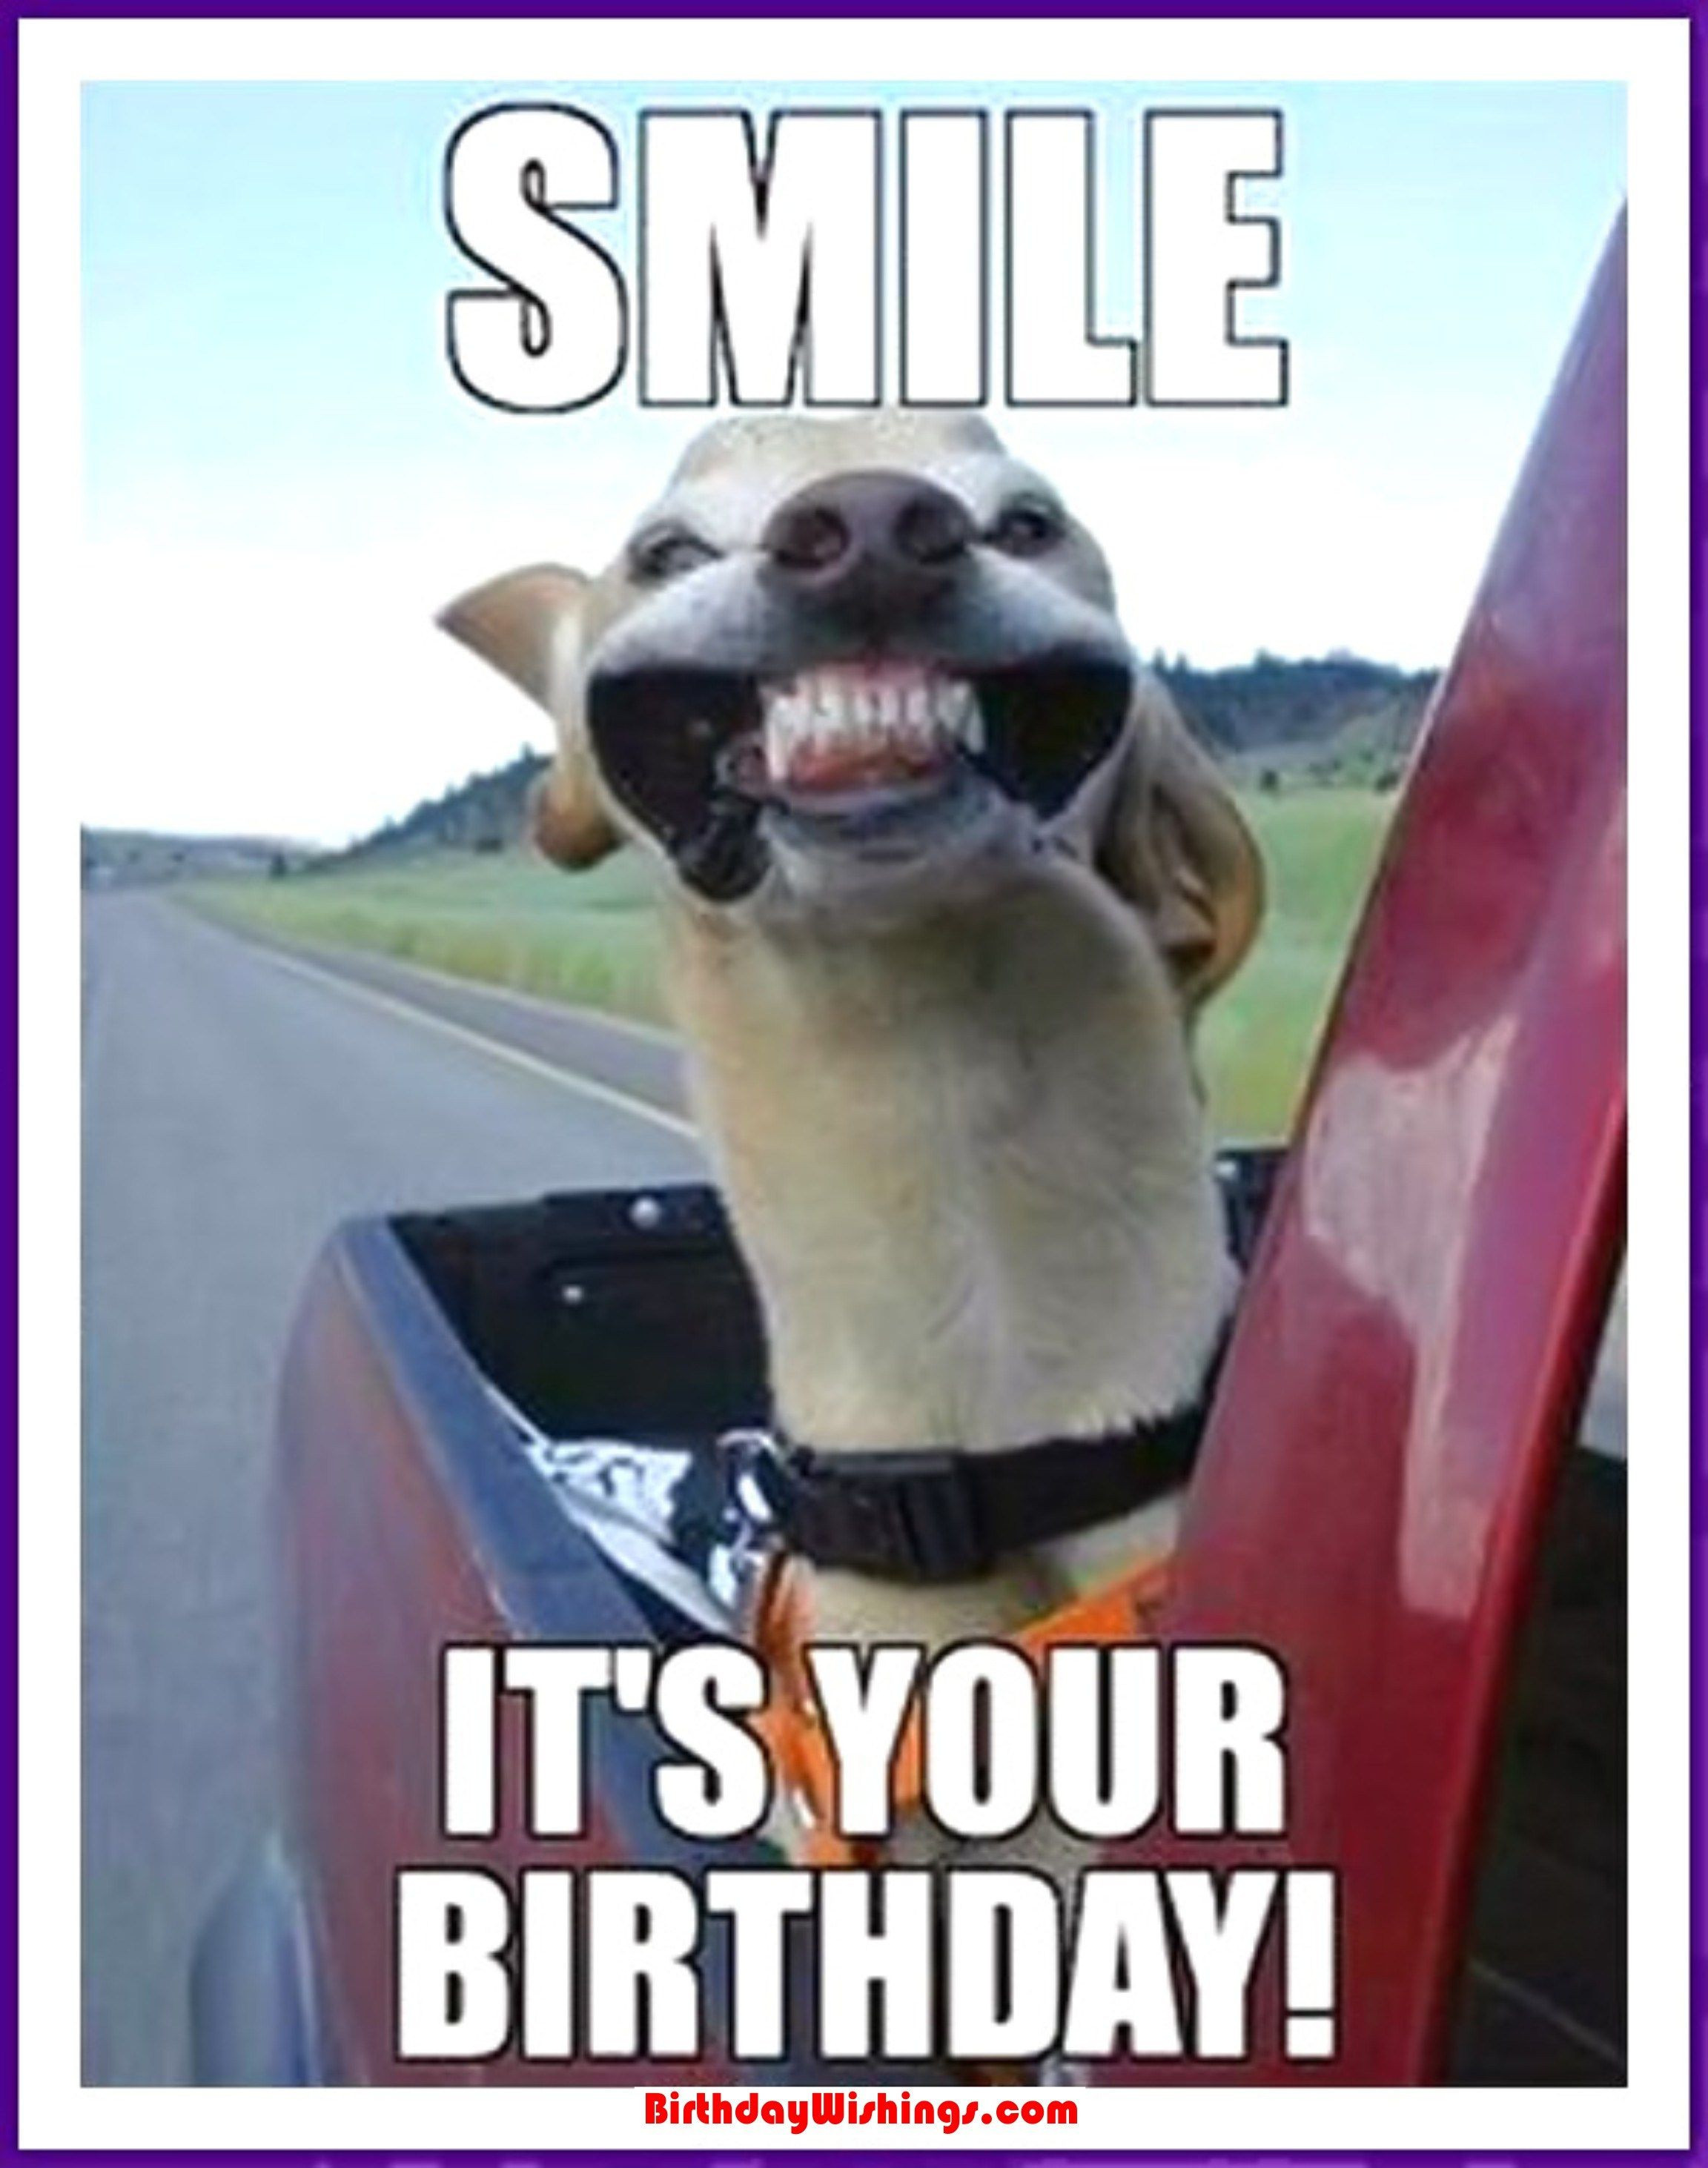 Happy Birthday Funny For Her  Funny Happy Birthday Memes With cats Dogs & Funny Animals